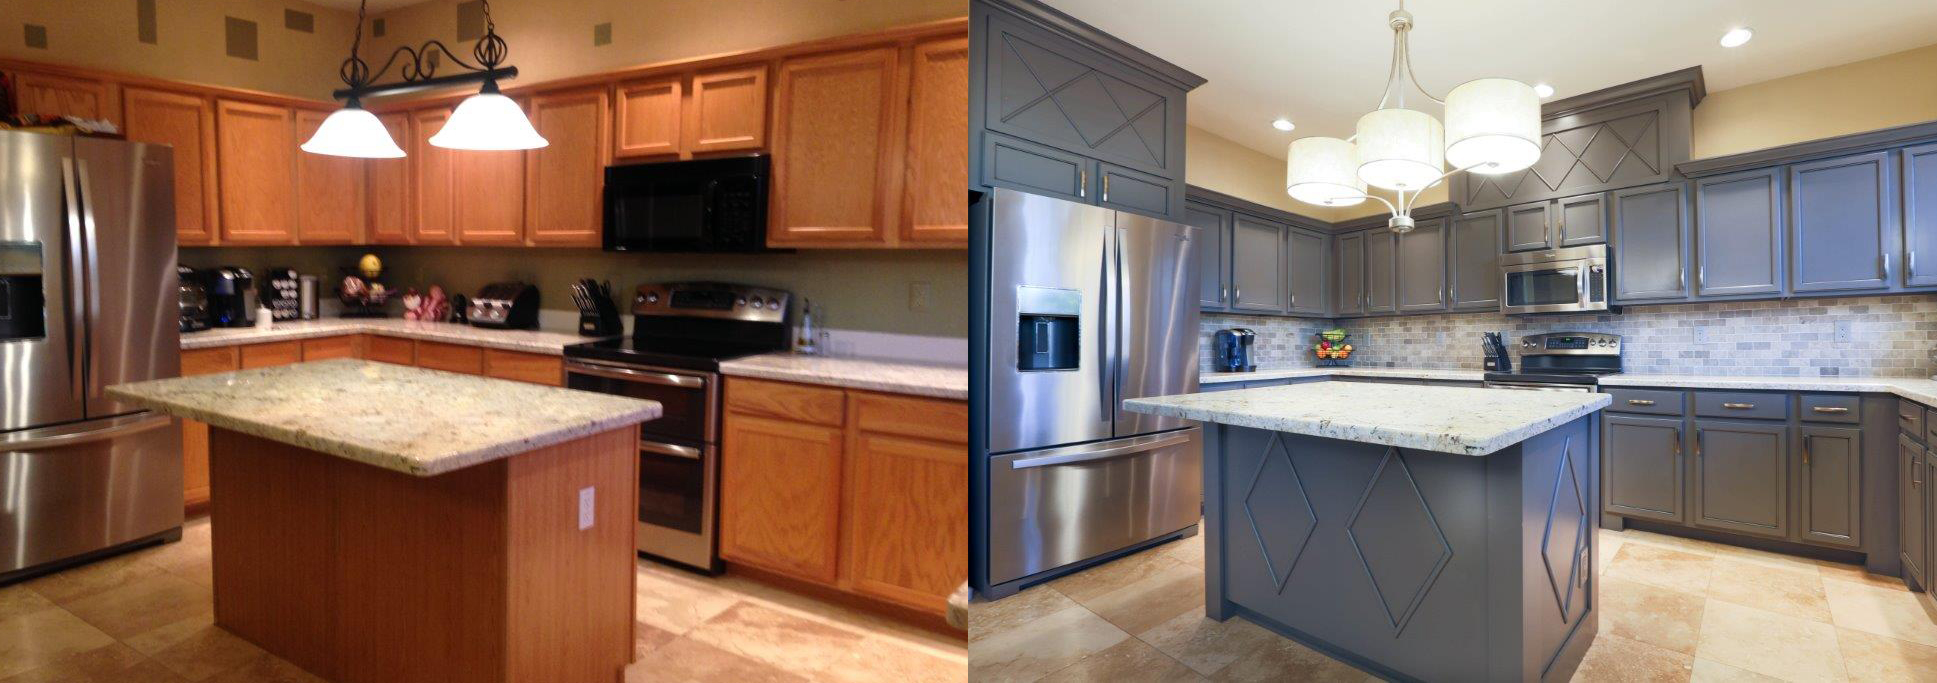 cabinet refinishing phoenix az tempe arizona kitchens bathrooms. beautiful ideas. Home Design Ideas